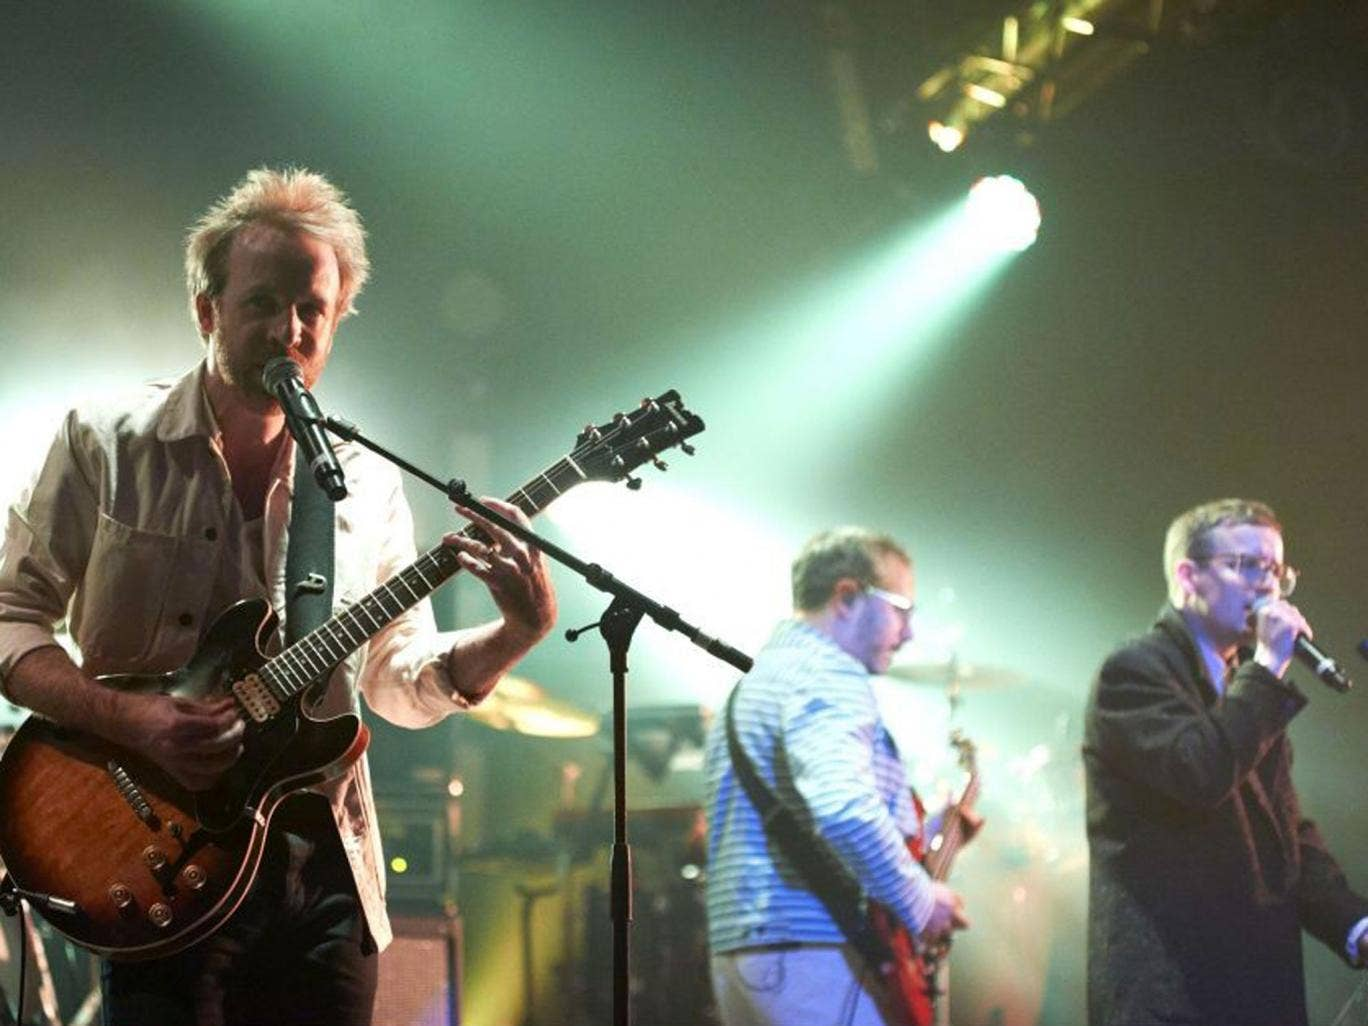 From Hot Chip (pictured) to Conor Oberst, the gigs organised by online fan campaigns